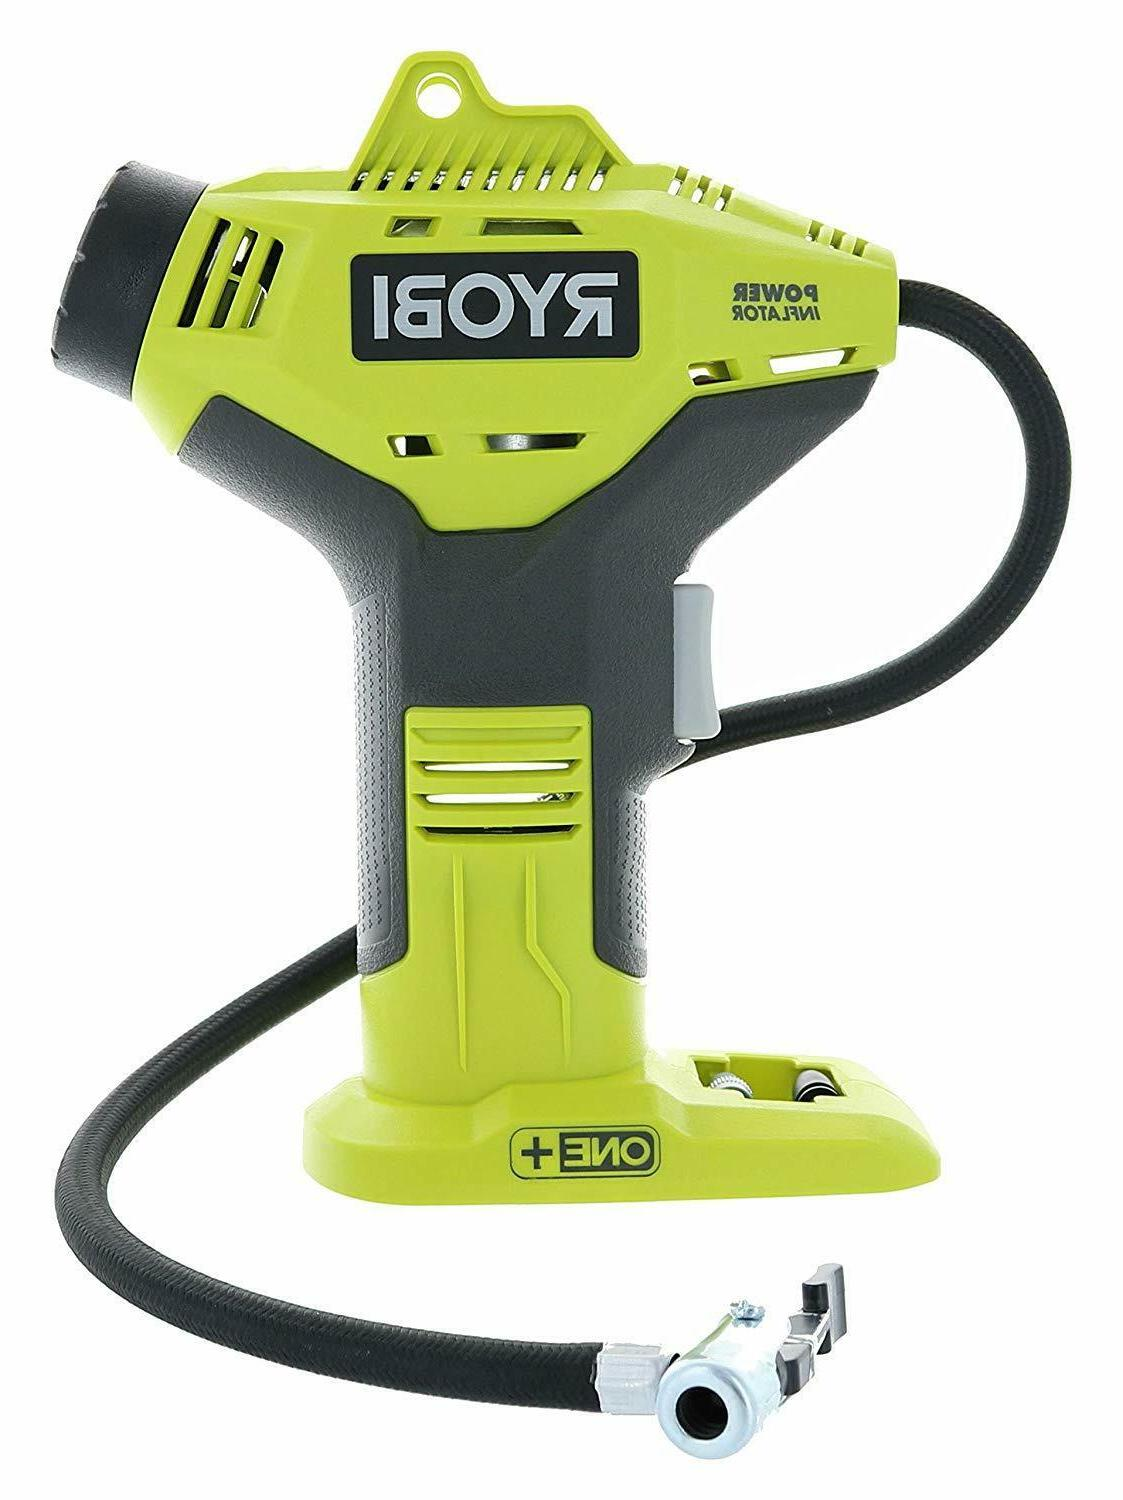 Ryobi P737 18-volt One Portable Power Inflator for Tires Bat